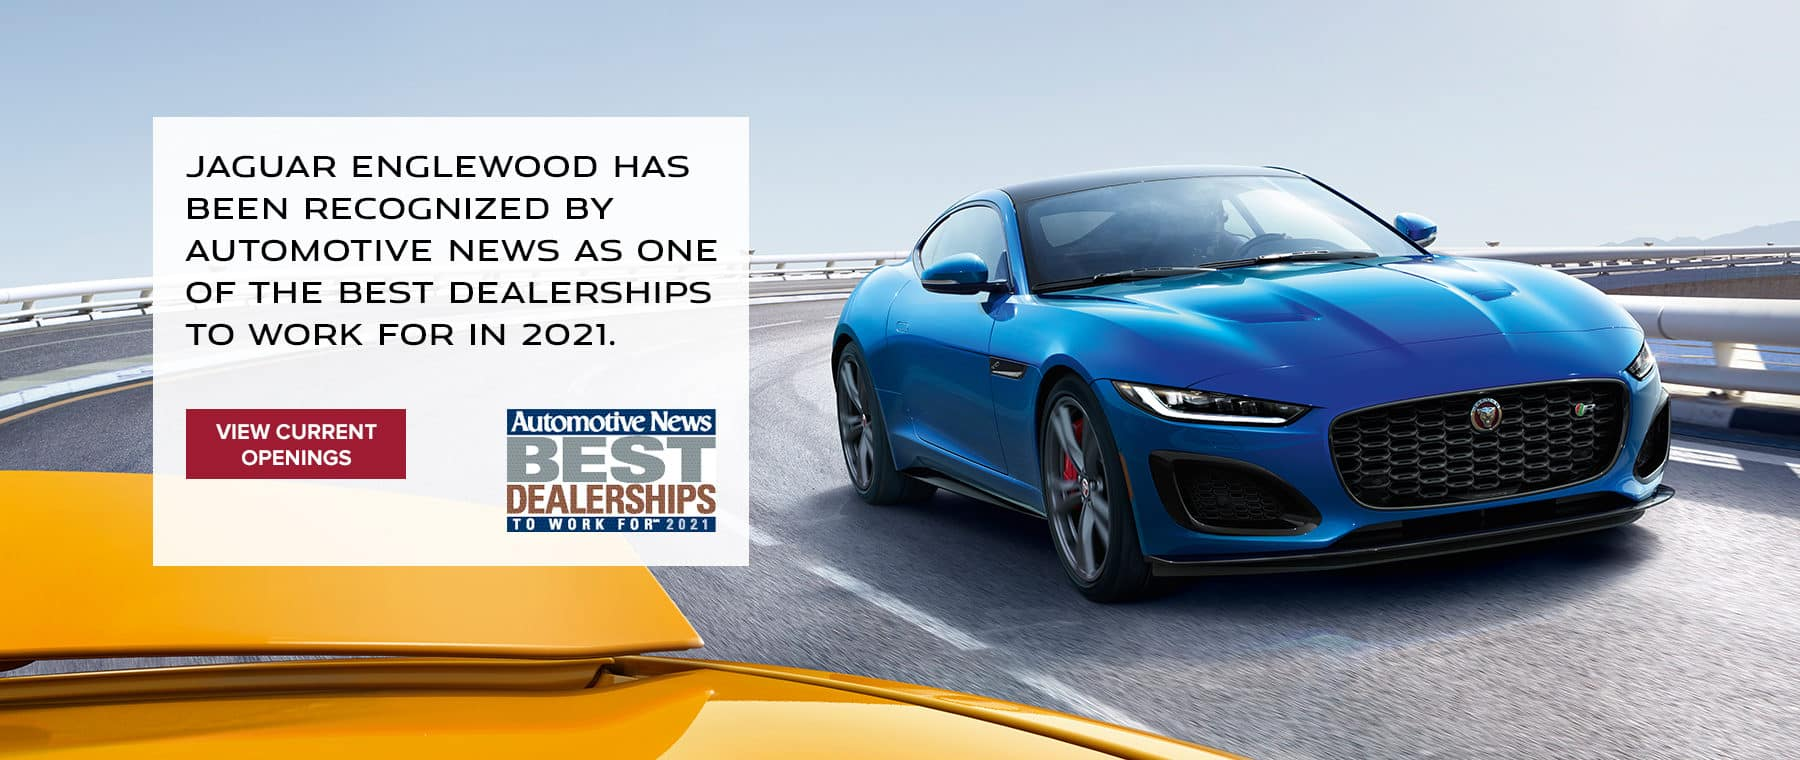 Jaguar Englewood has been recognized by Automotive News as one of the Best Dealerships to Work For in 2021.